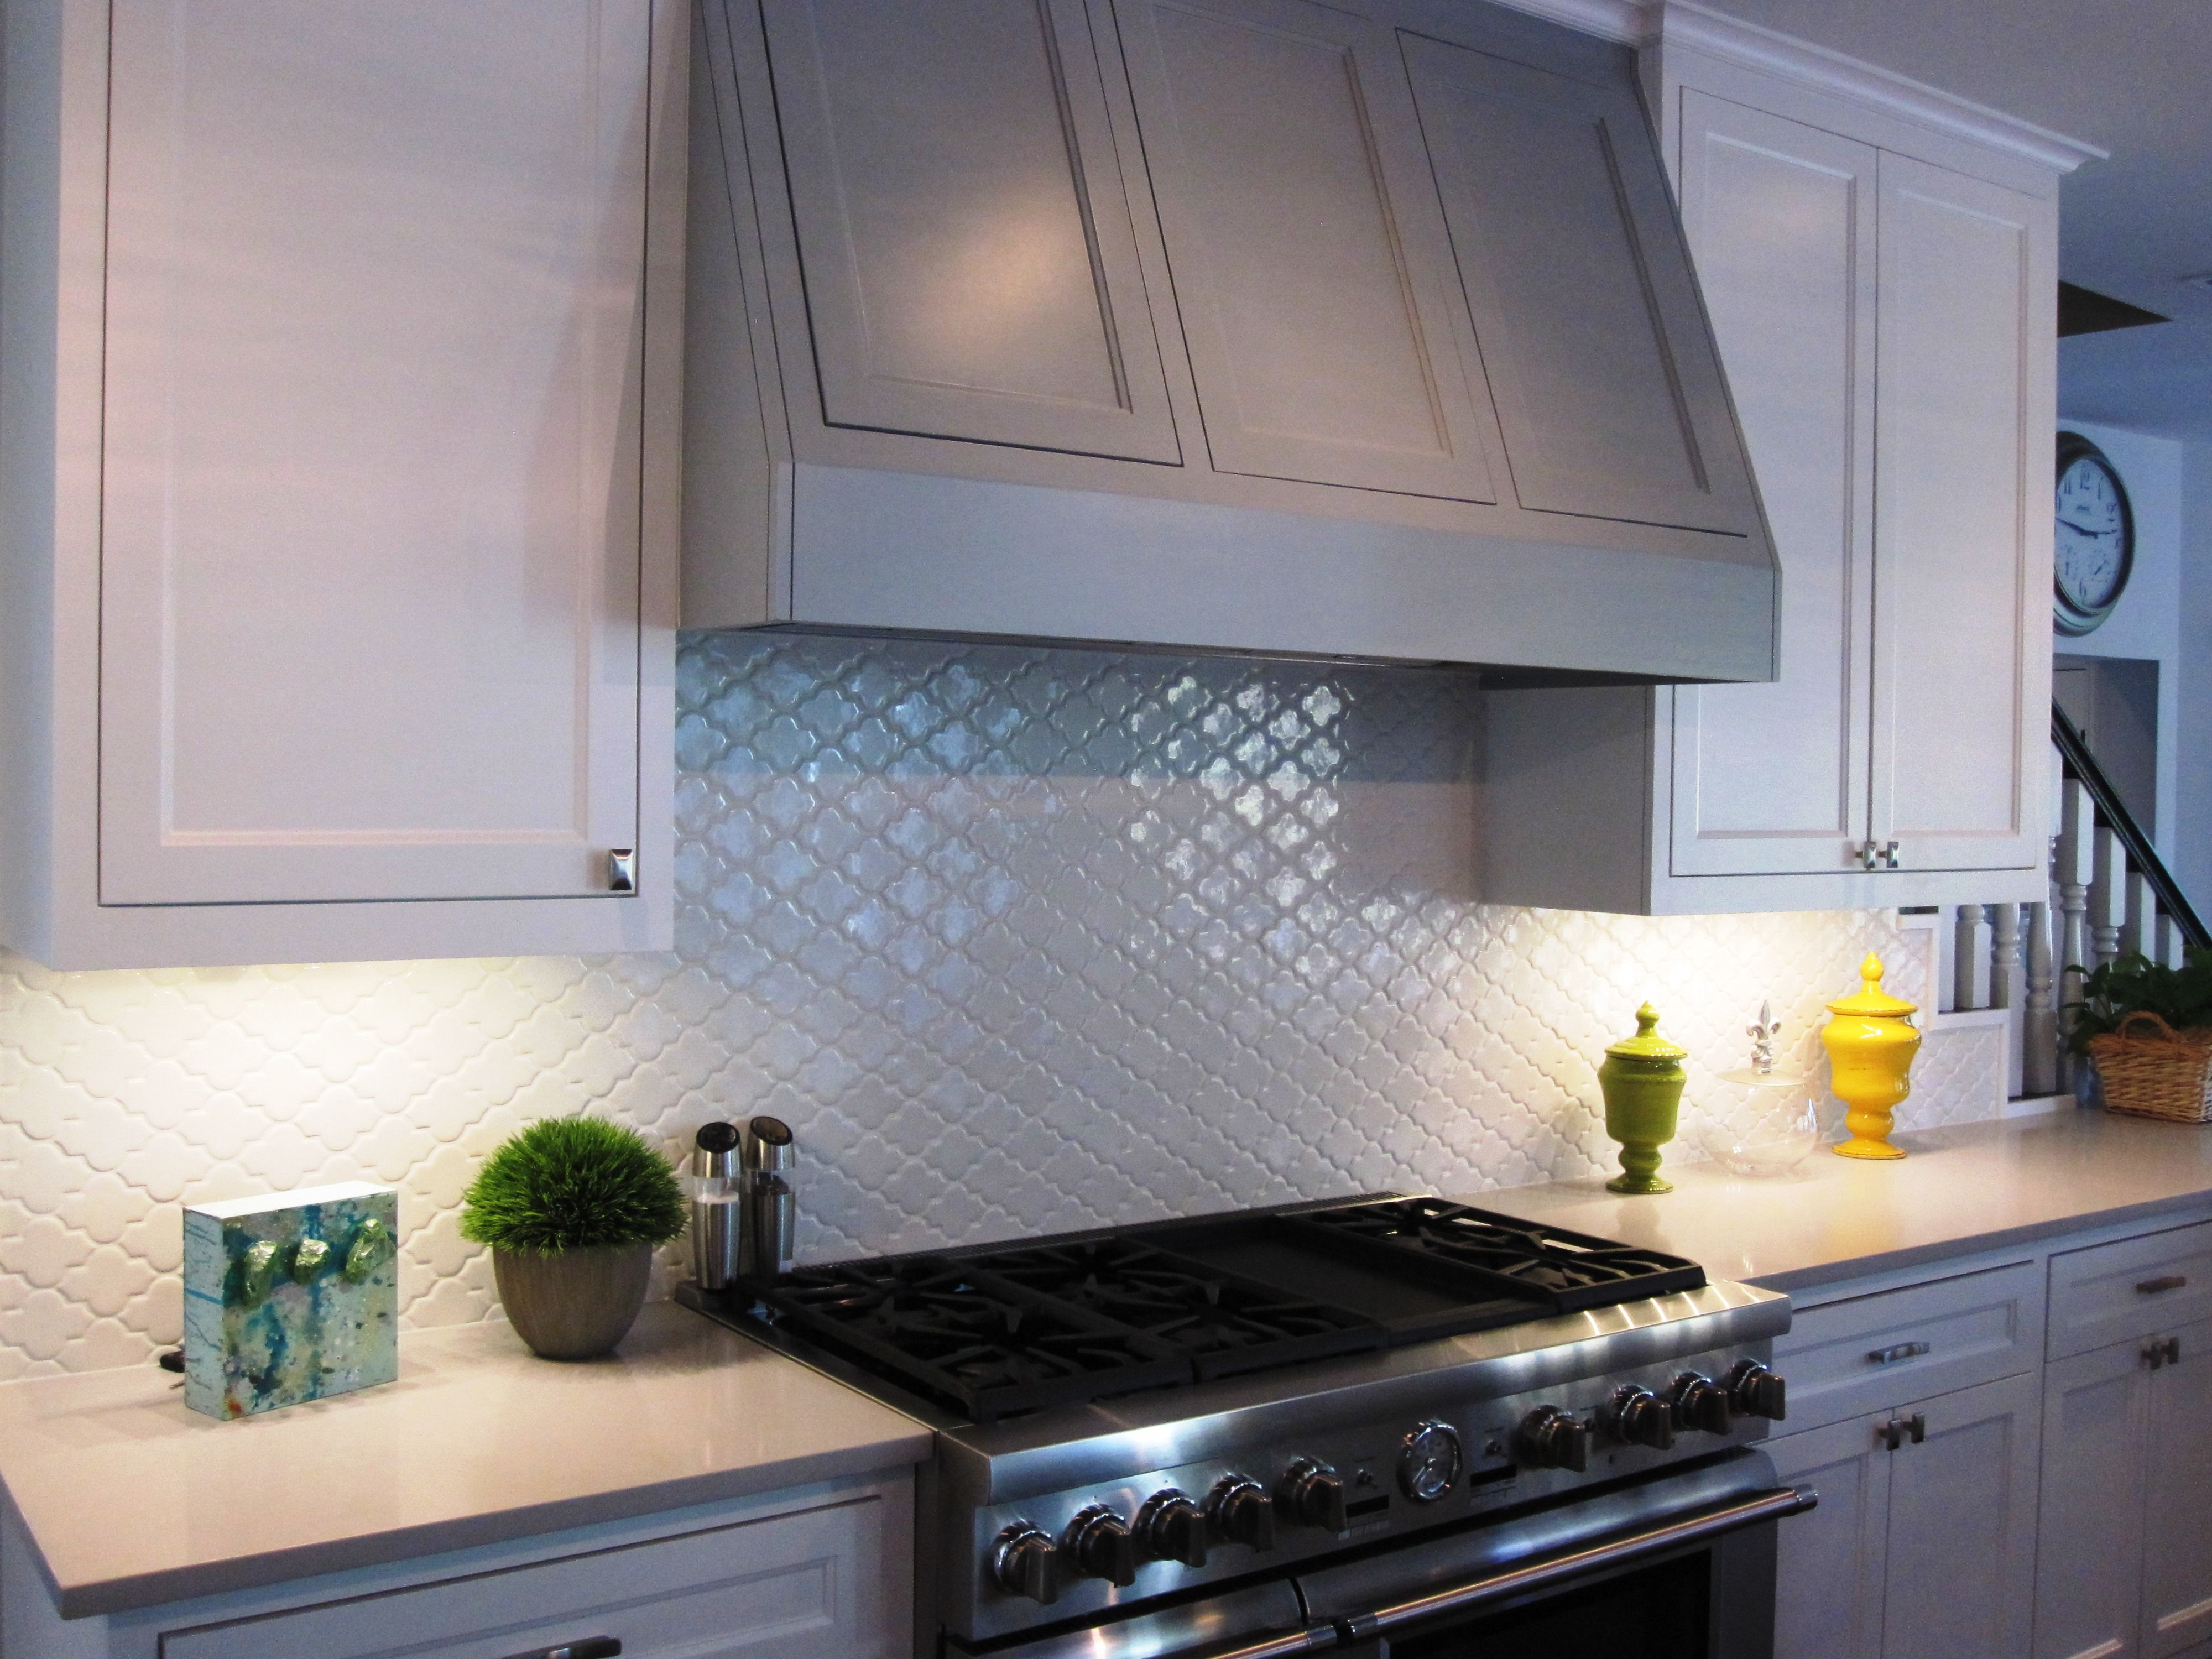 Kitchen backsplash is a white moroccan tile from walker zanger kitchen backsplash is a white moroccan tile from walker zanger designed by lisa goe at doublecrazyfo Image collections